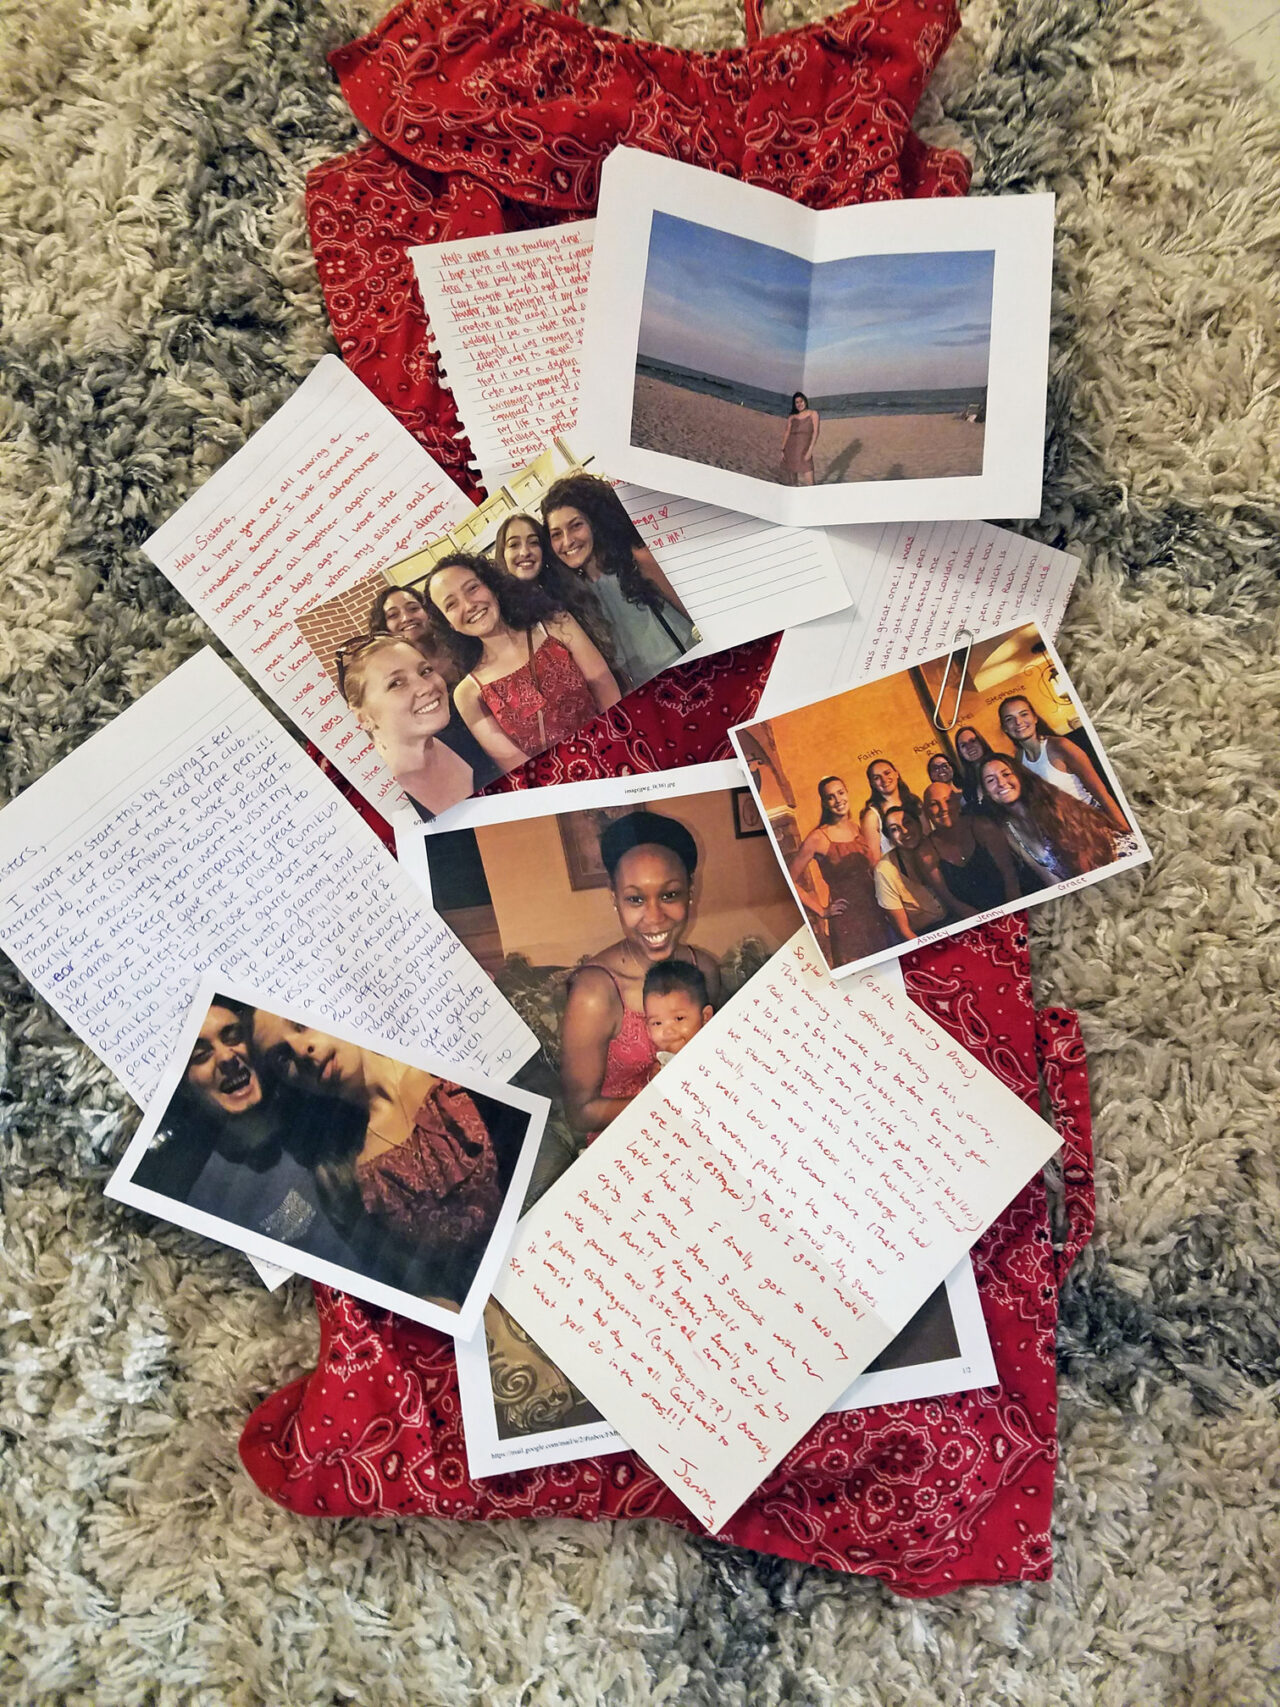 A pile of photos and hand-written notes.